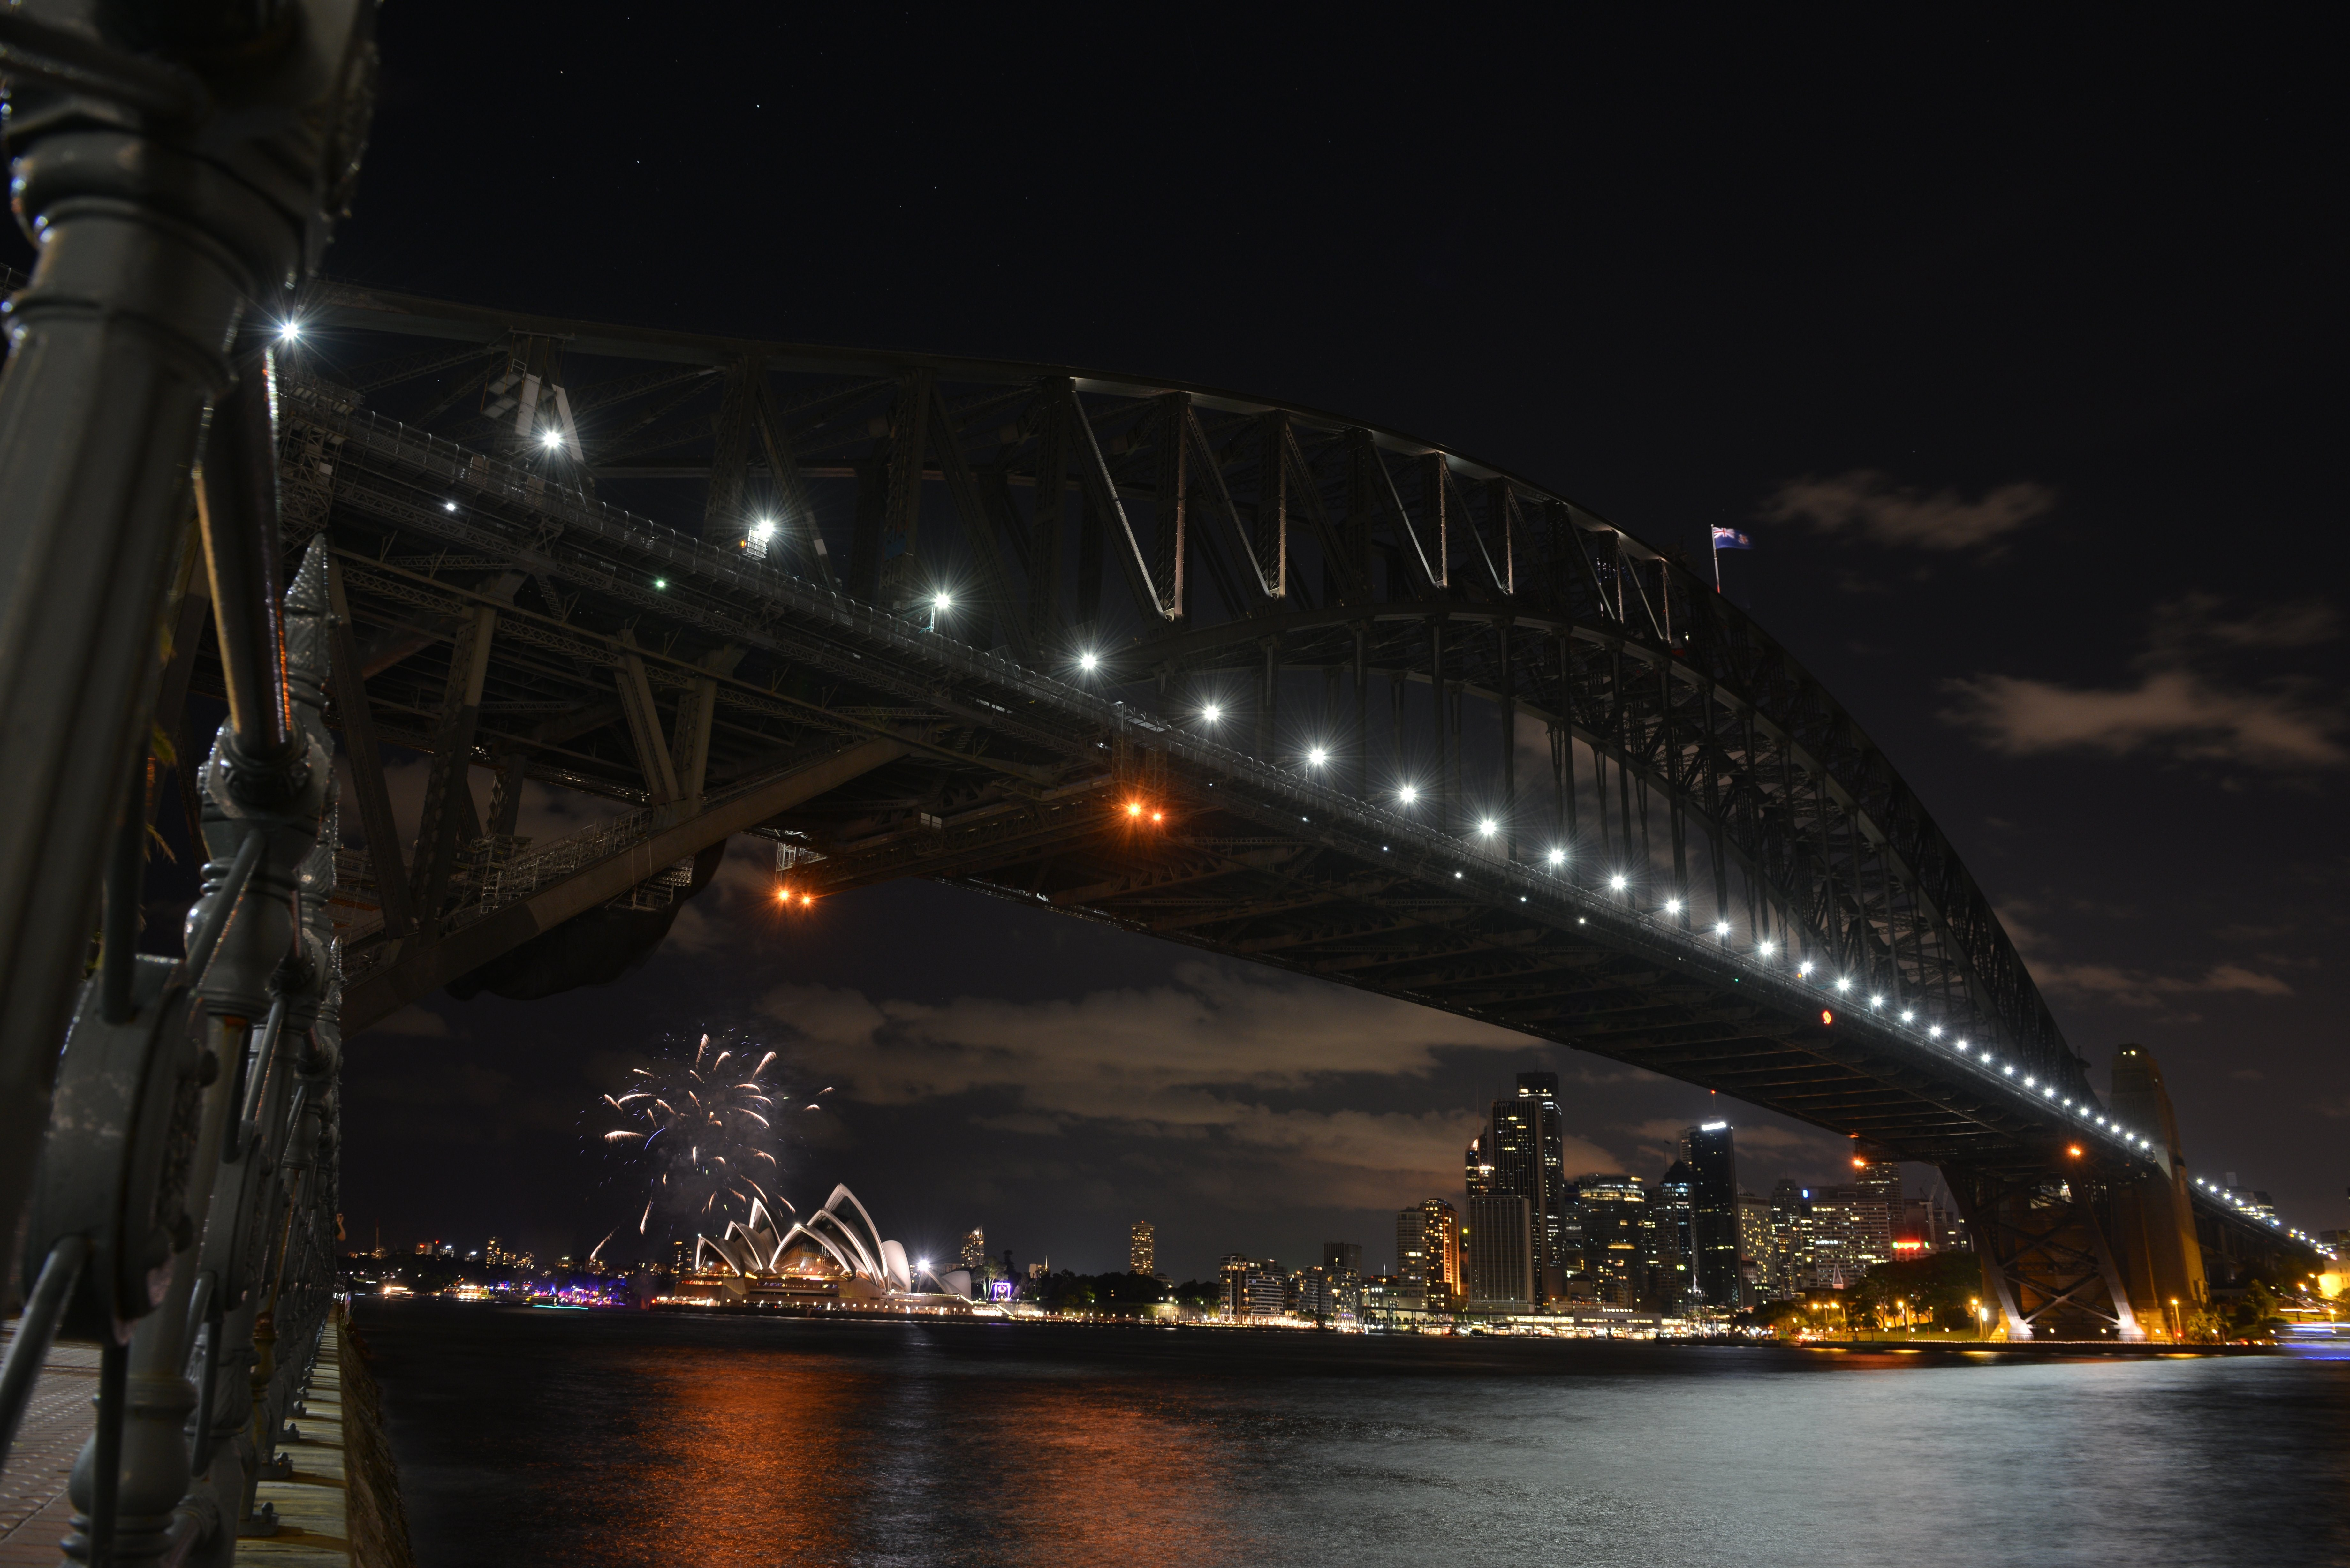 Fireworks fade as lights go out on the Sydney Harbour Bridge and Opera House to signal the start of the Earth Hour environmental campaign, among the first landmarks around the world to dim their lights for the event on March 28, 2015.